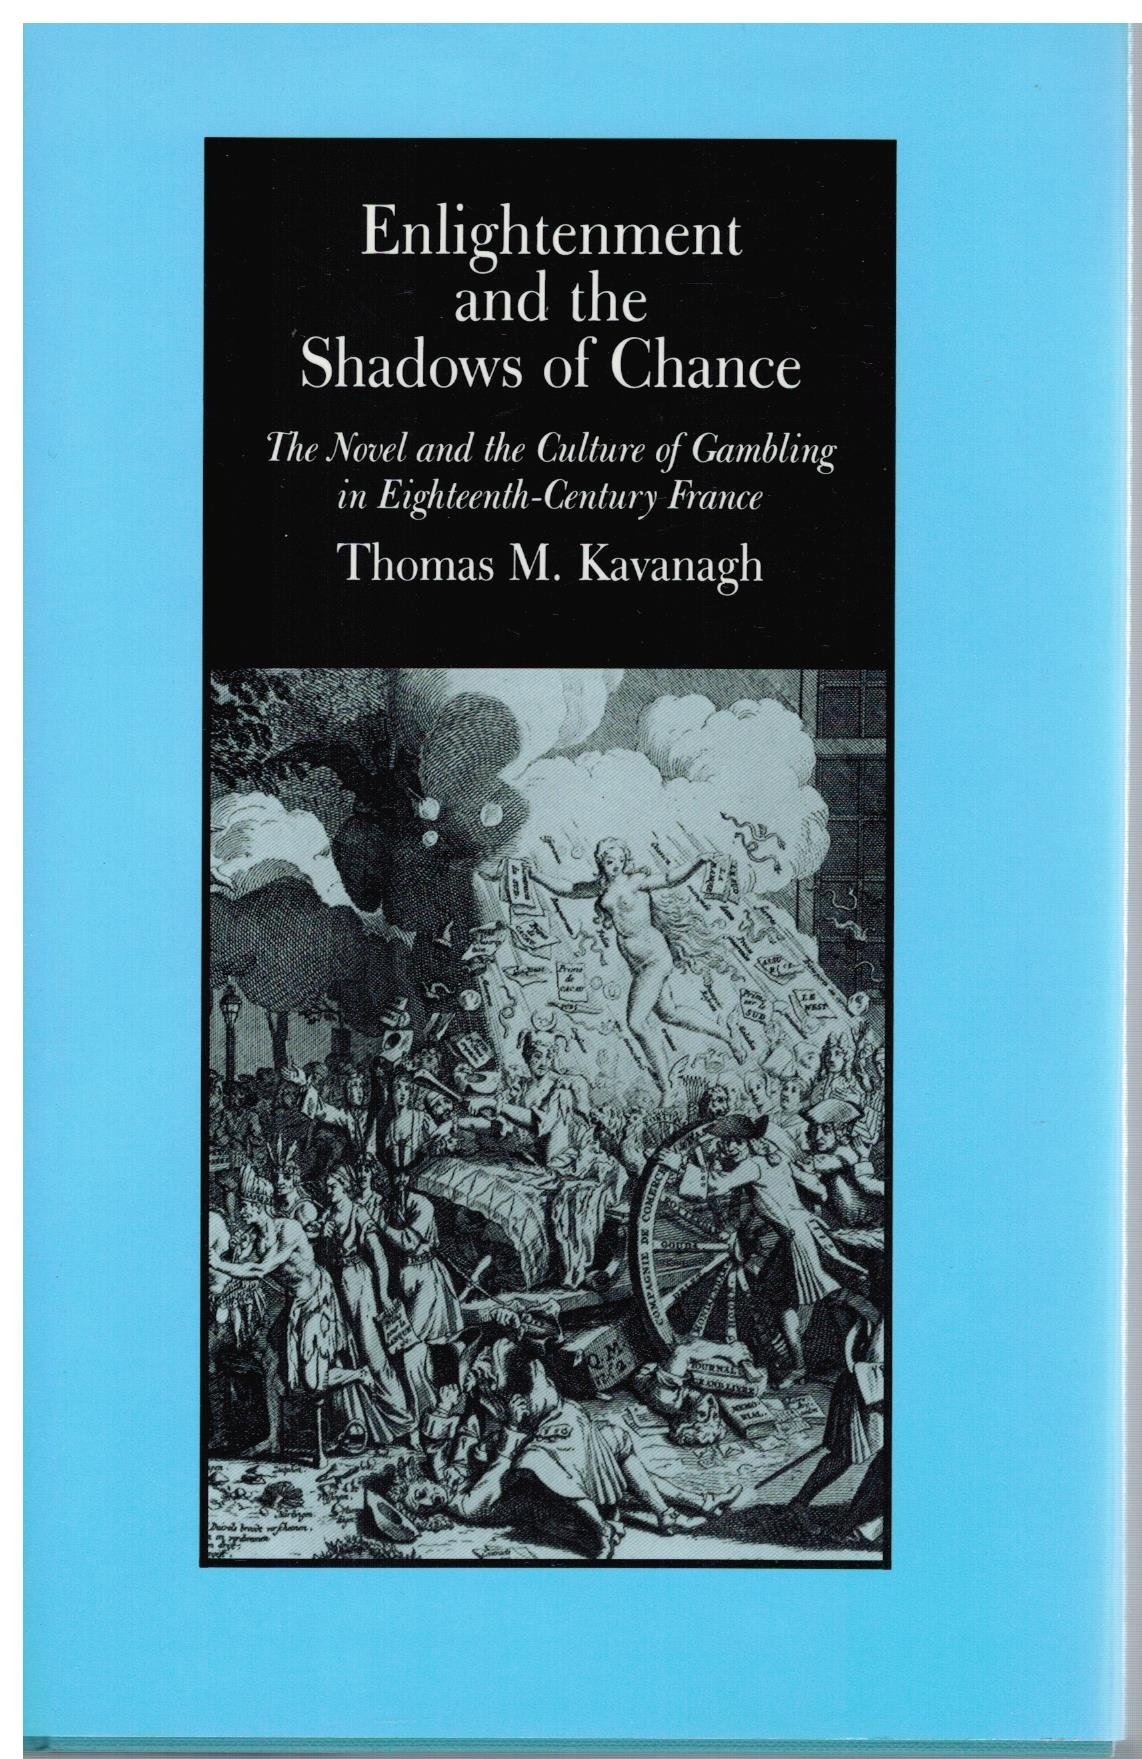 Enlightenment and the Shadows of Chance: The Novel and the Culture of Gambling in Eighteenth-Century France, Kavanagh, Professor Thomas M.